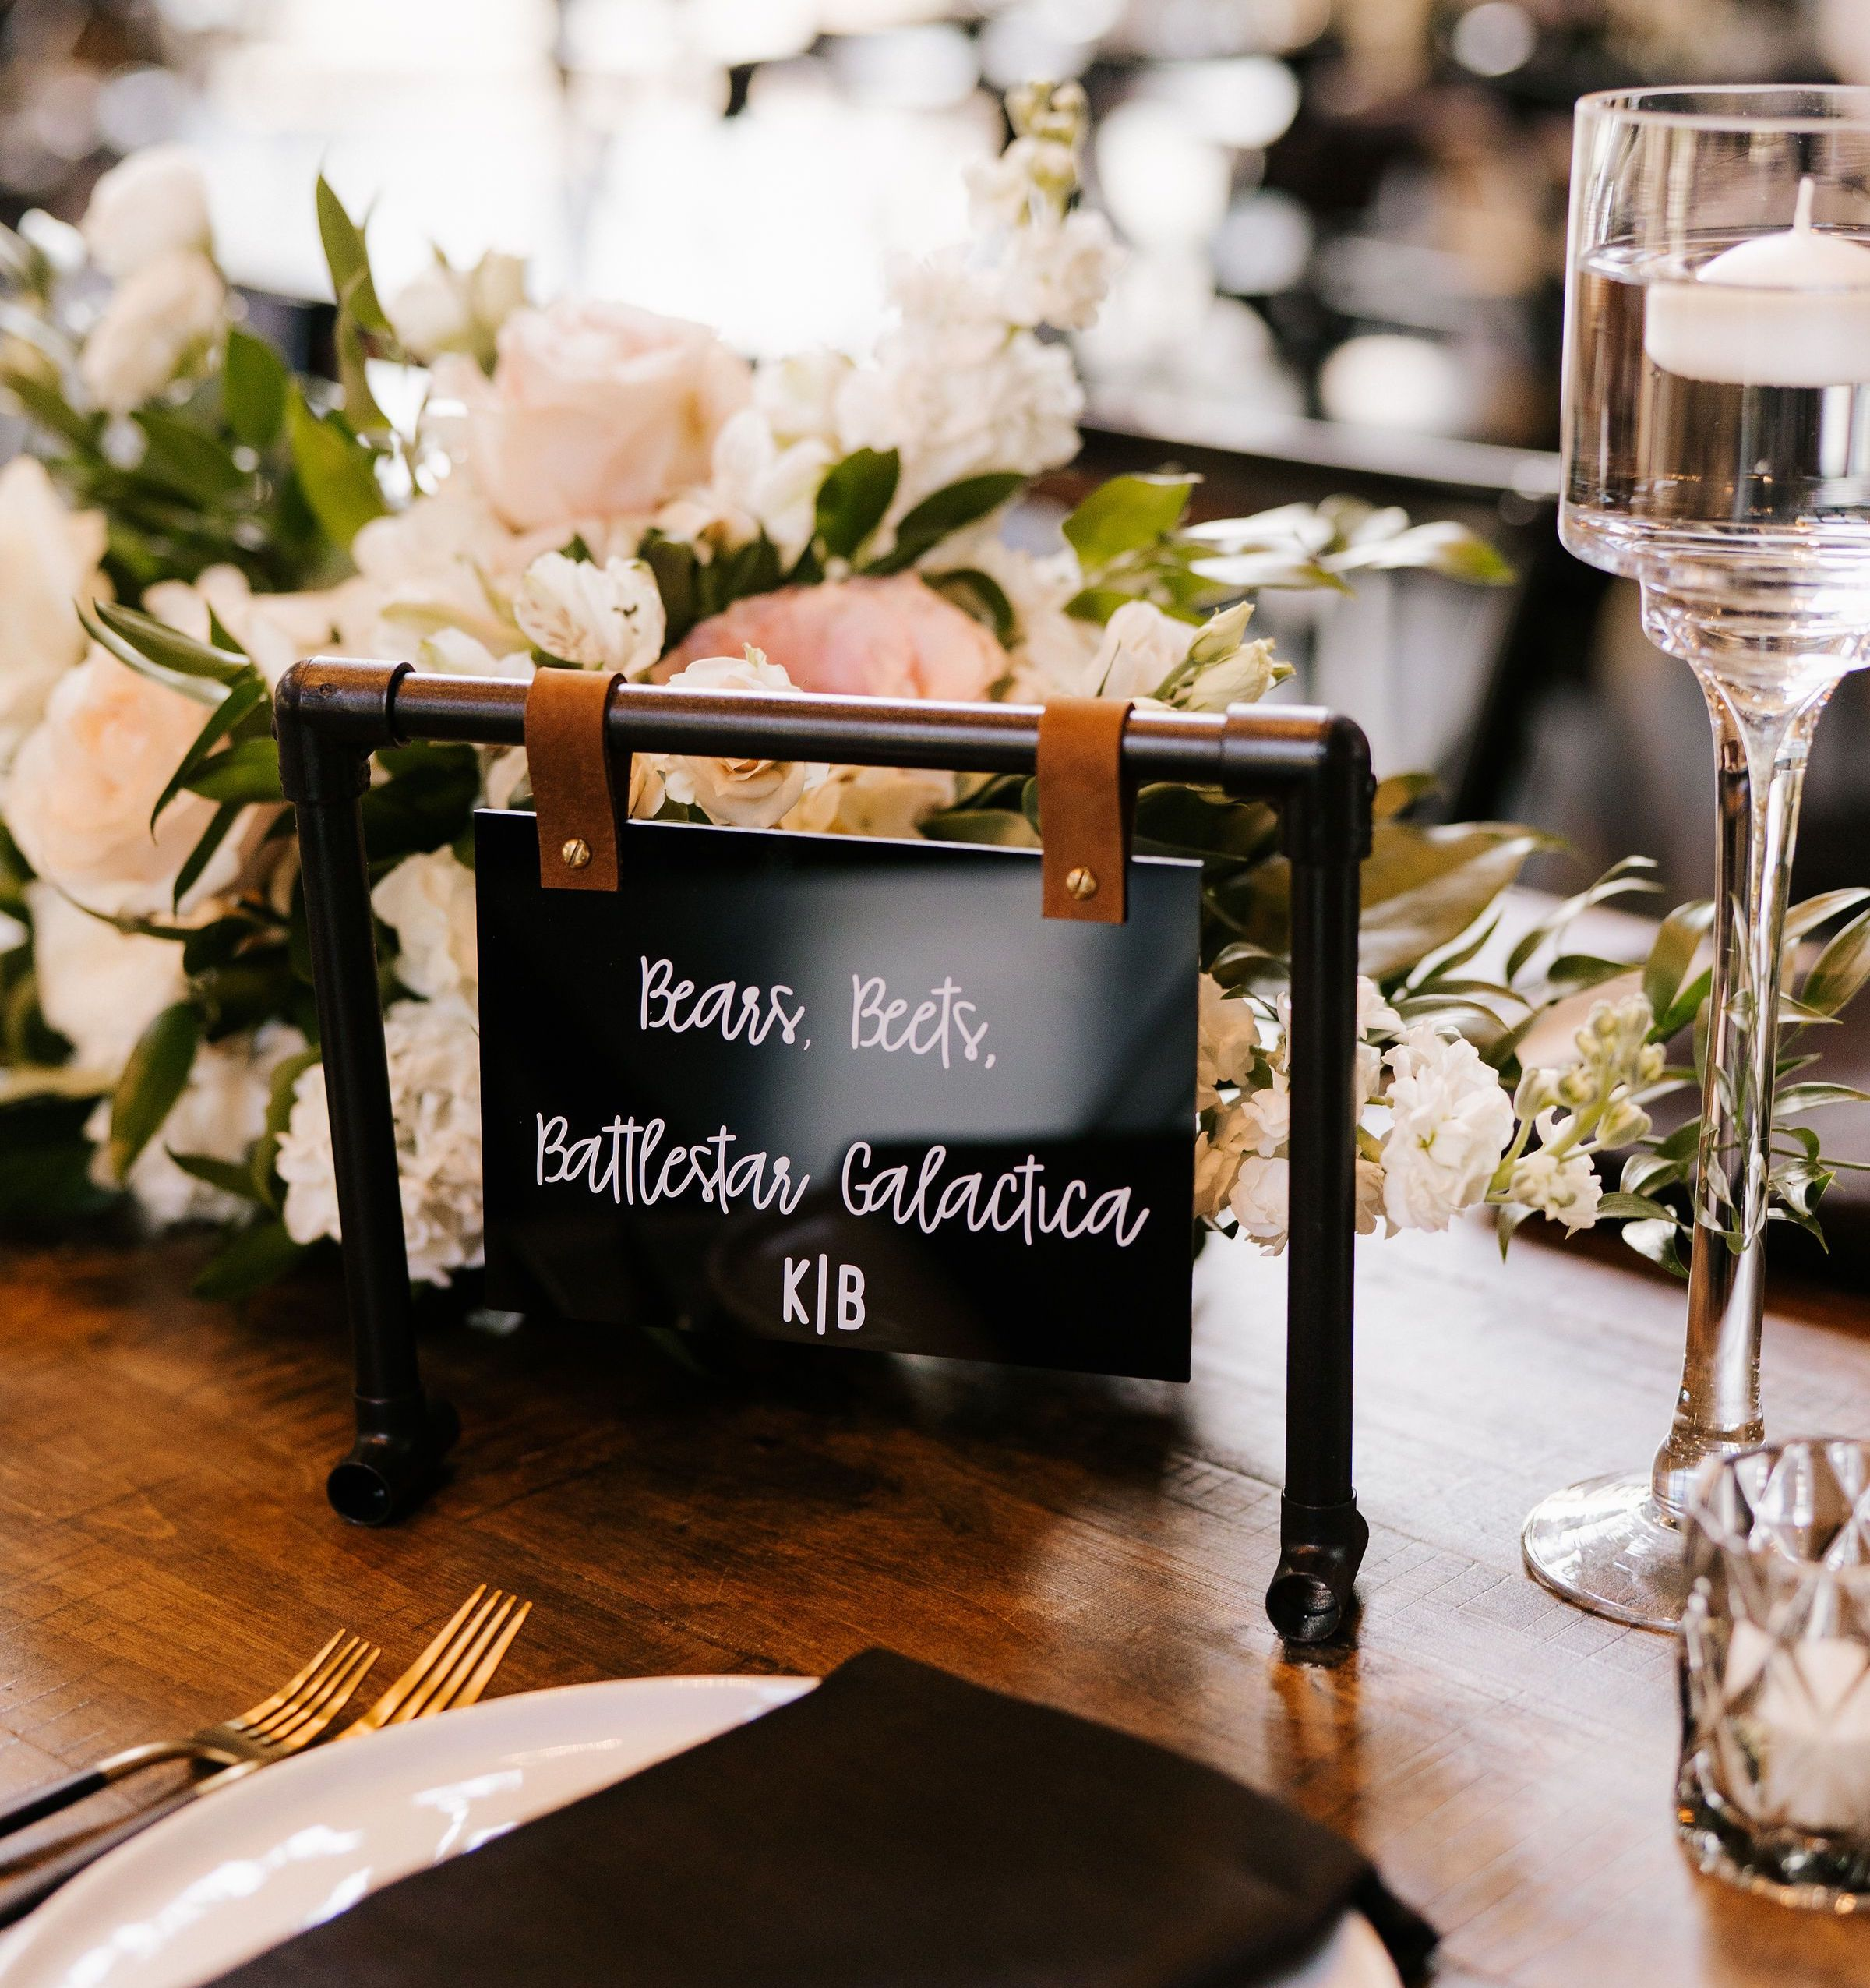 Custom industrial chic wedding table cards made of faux-iron pipe, acrylic, and leather straps display the couple's creative table names.